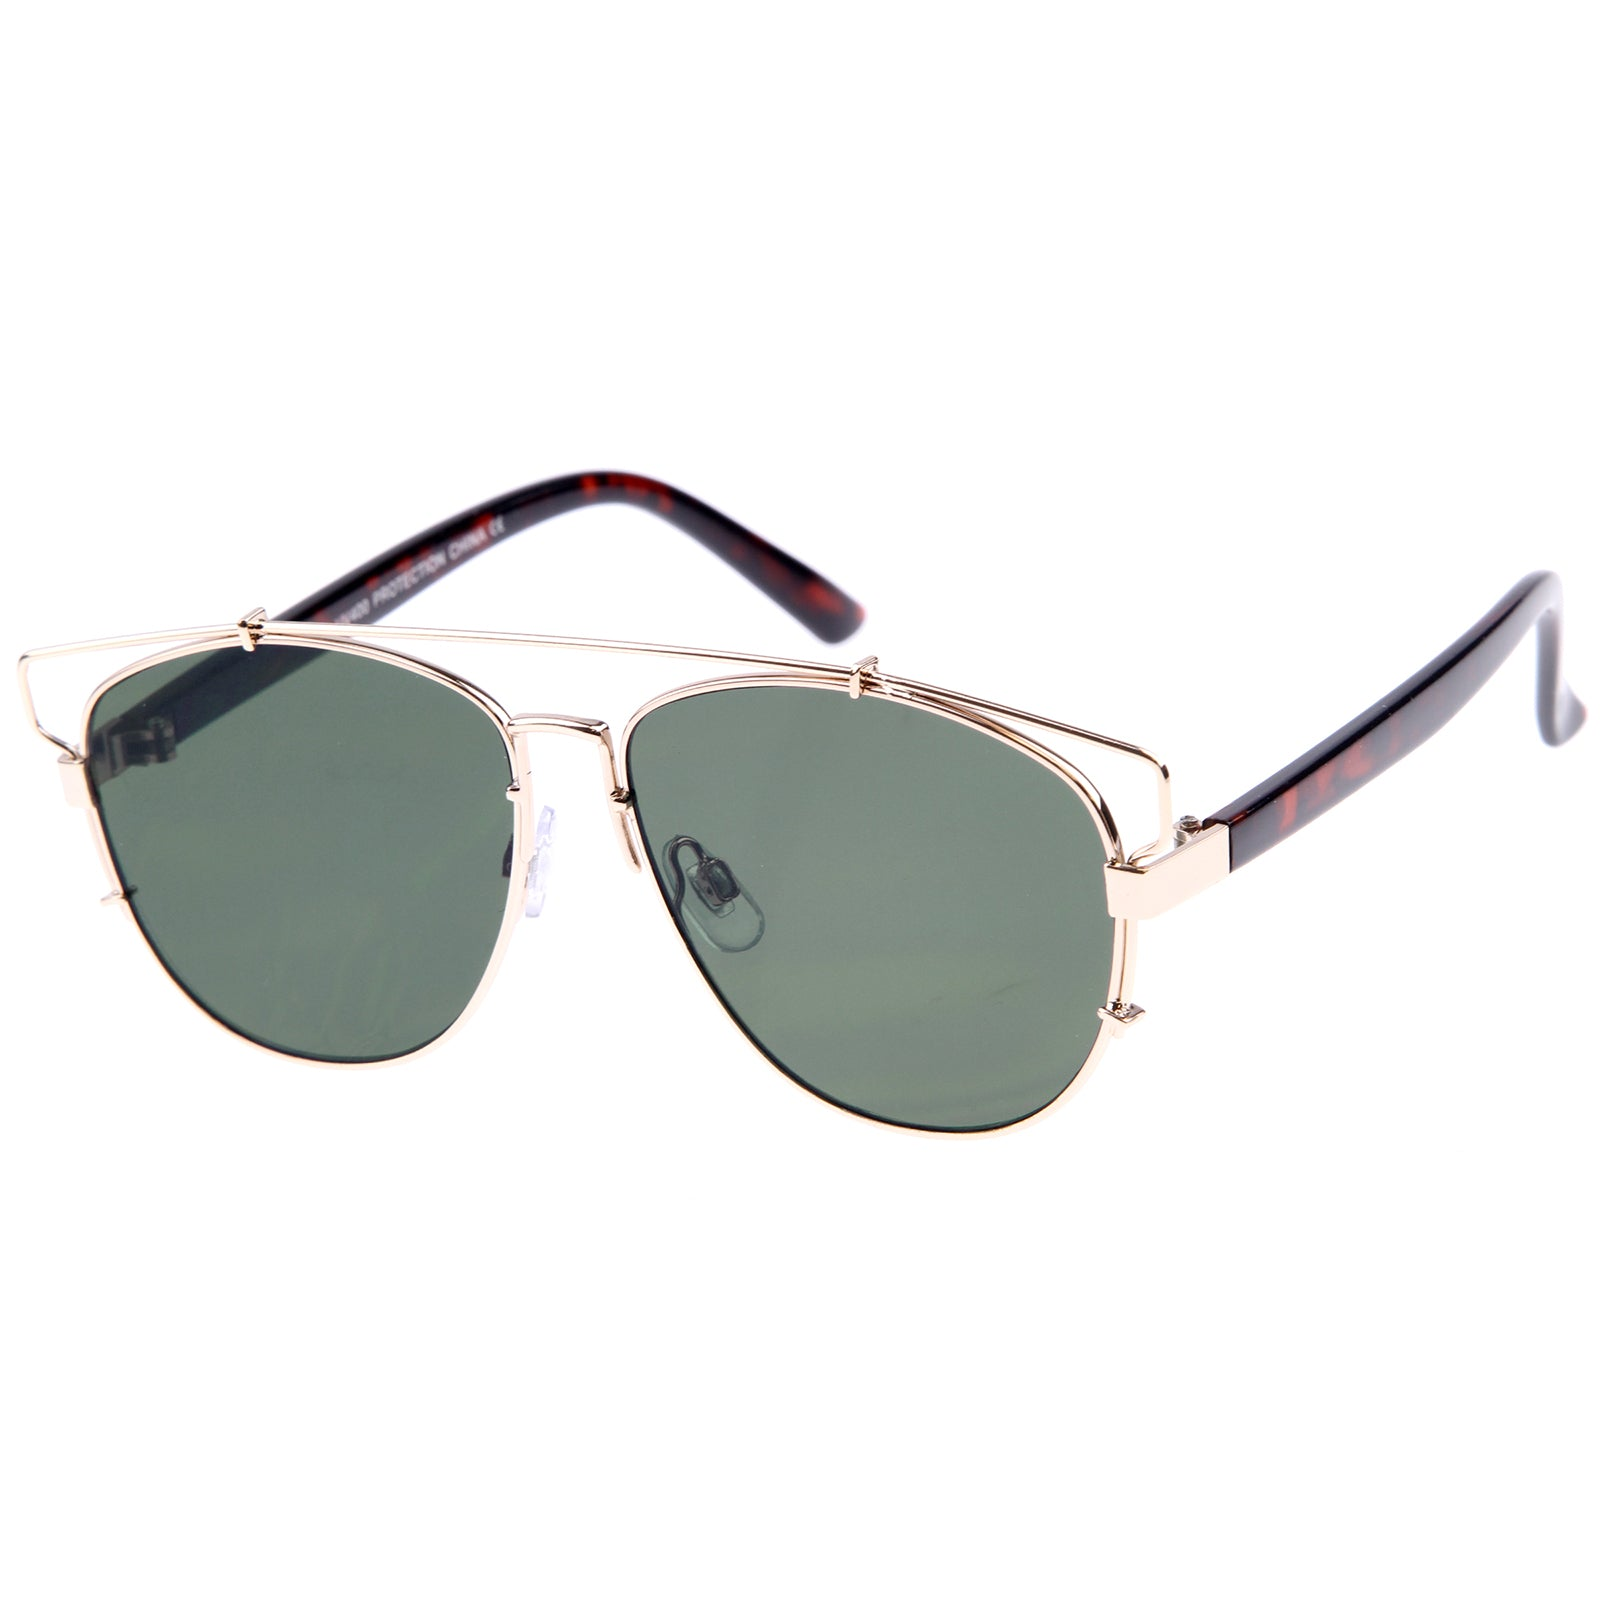 Gold-Tortoise / Green Sunglasses